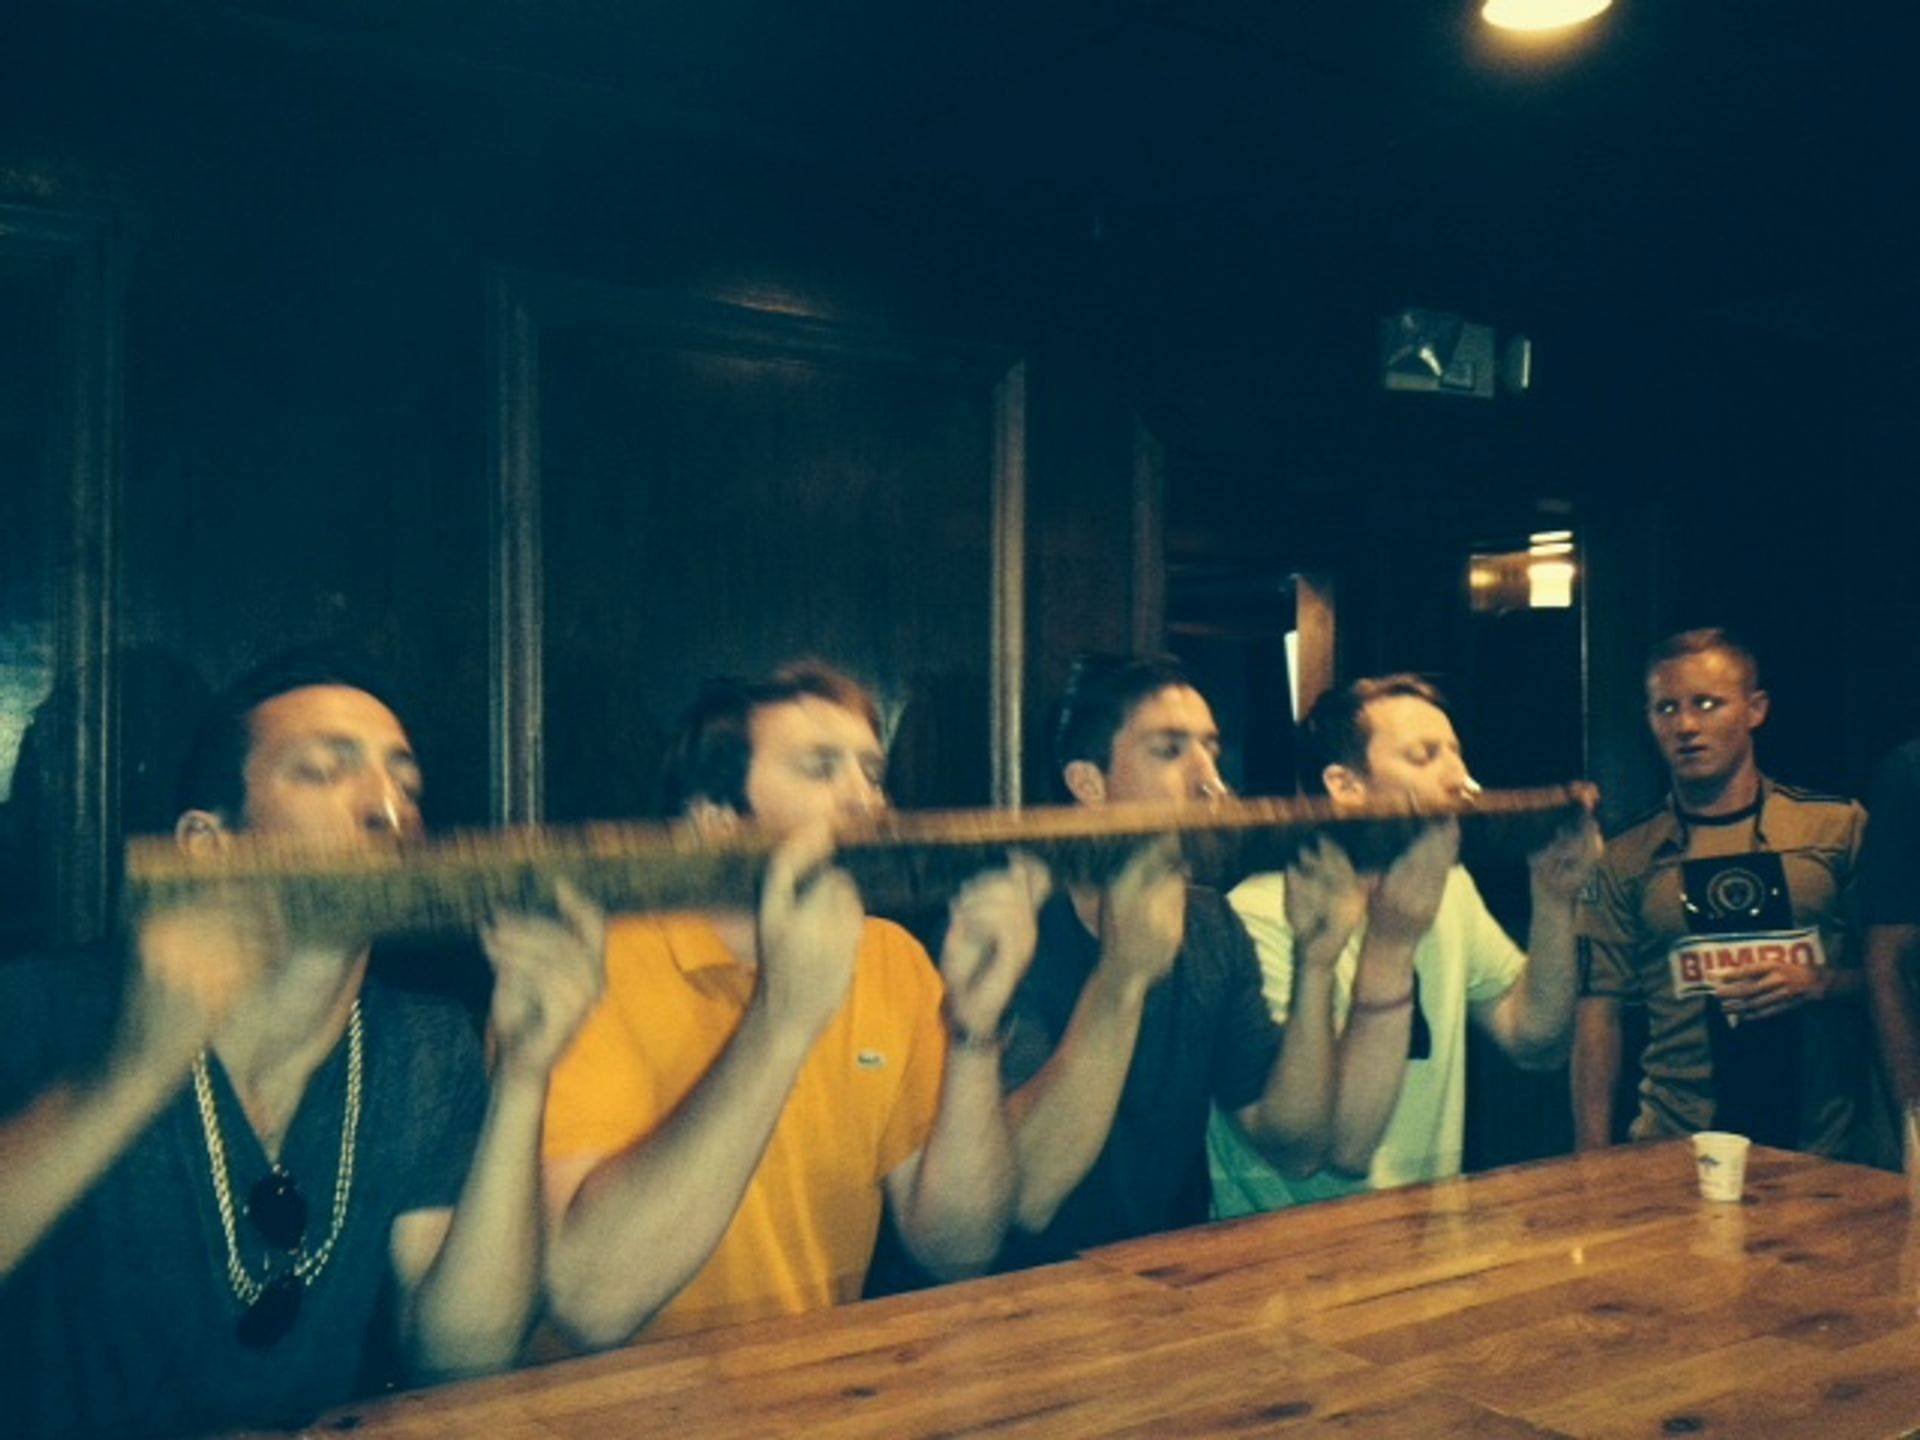 Kevin's Nashville bachelor party tries shotskis